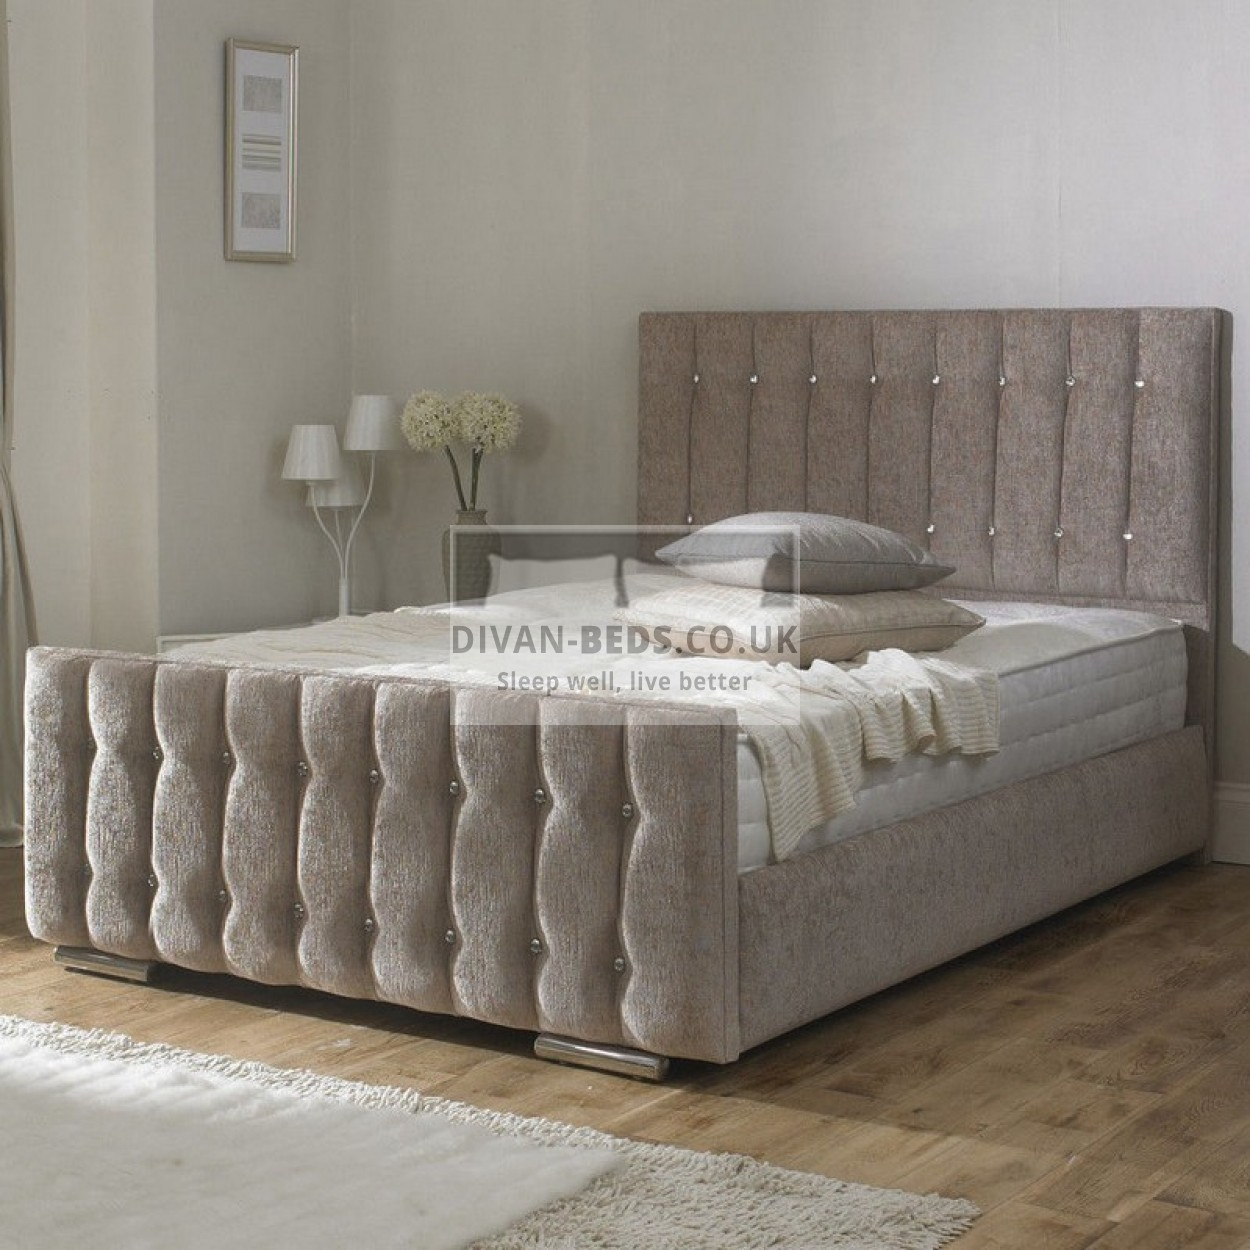 Karina fabric upholstered bed frame guaranteed cheapest for Upholstered bedframes